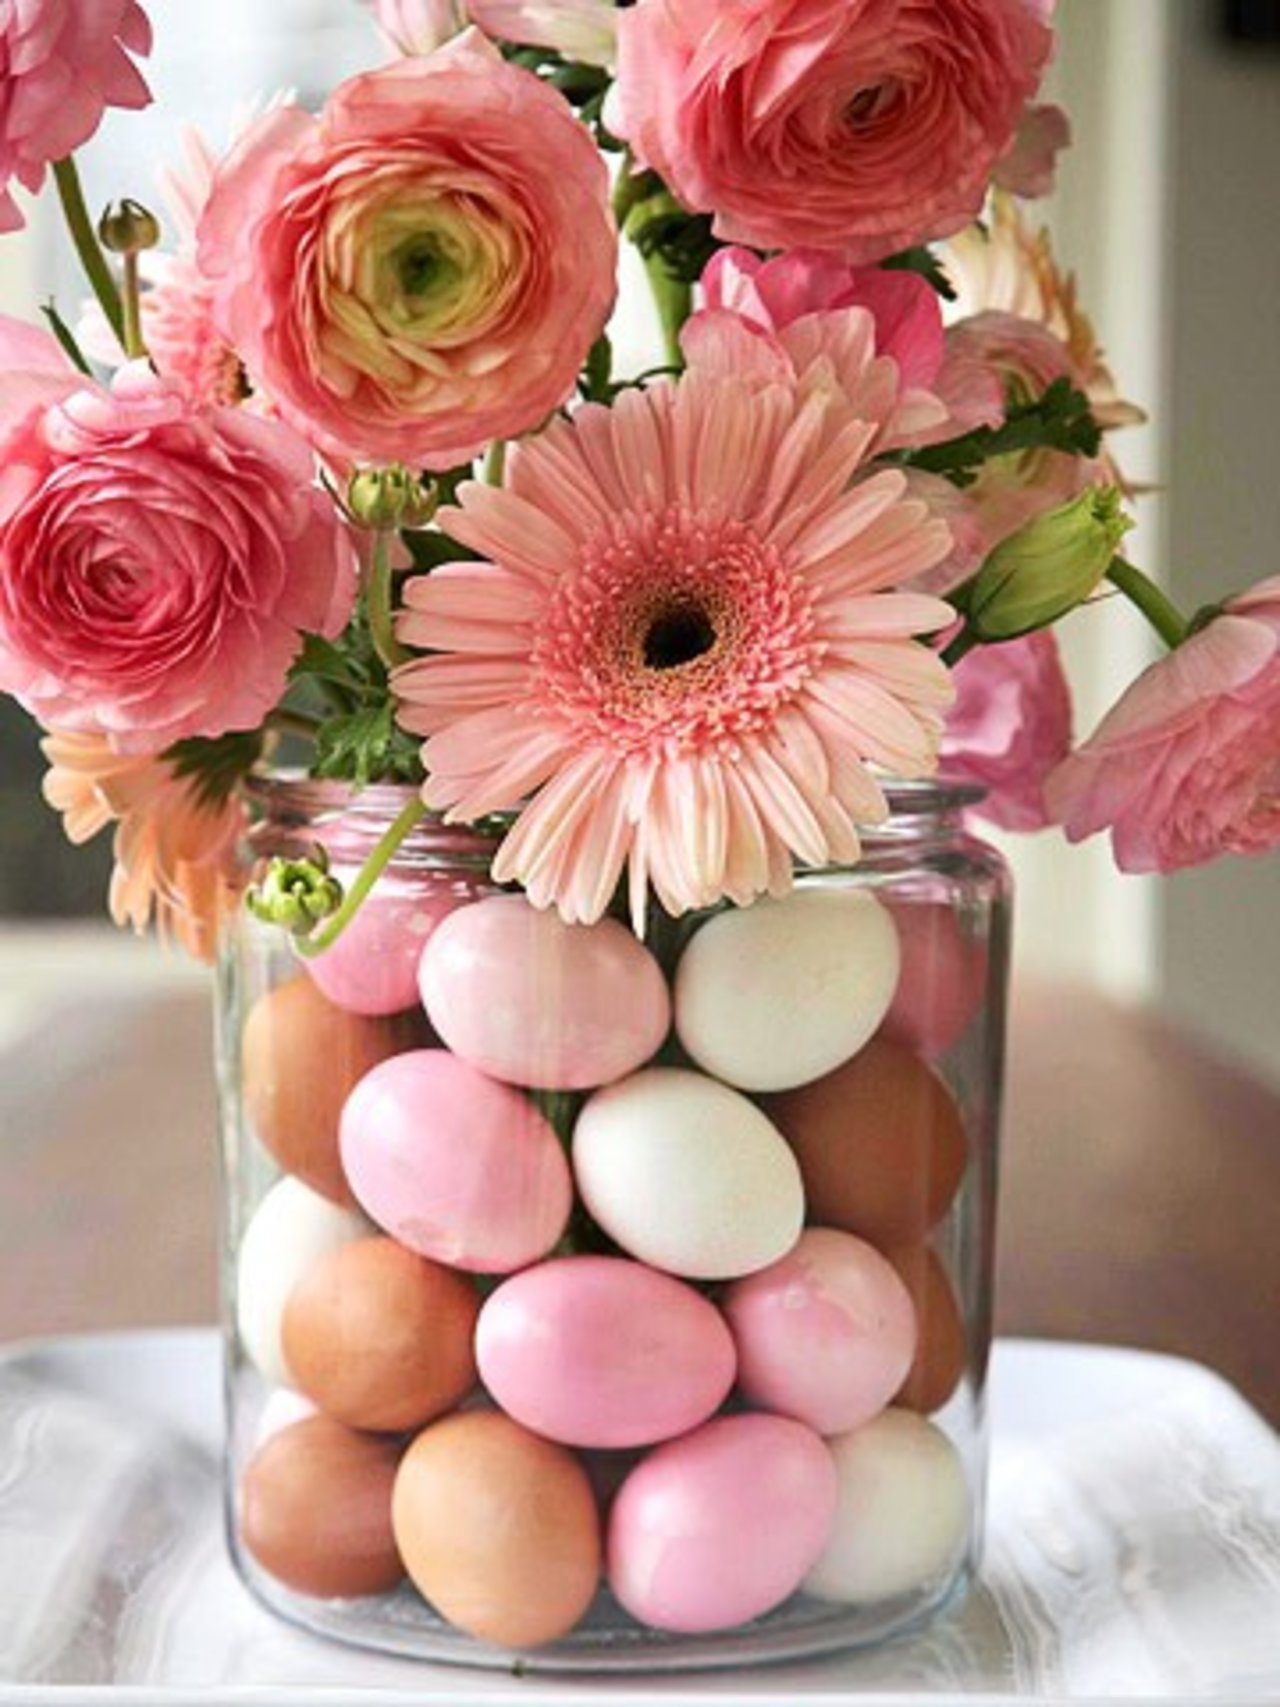 Fill a Large Vase with Colored Eggs